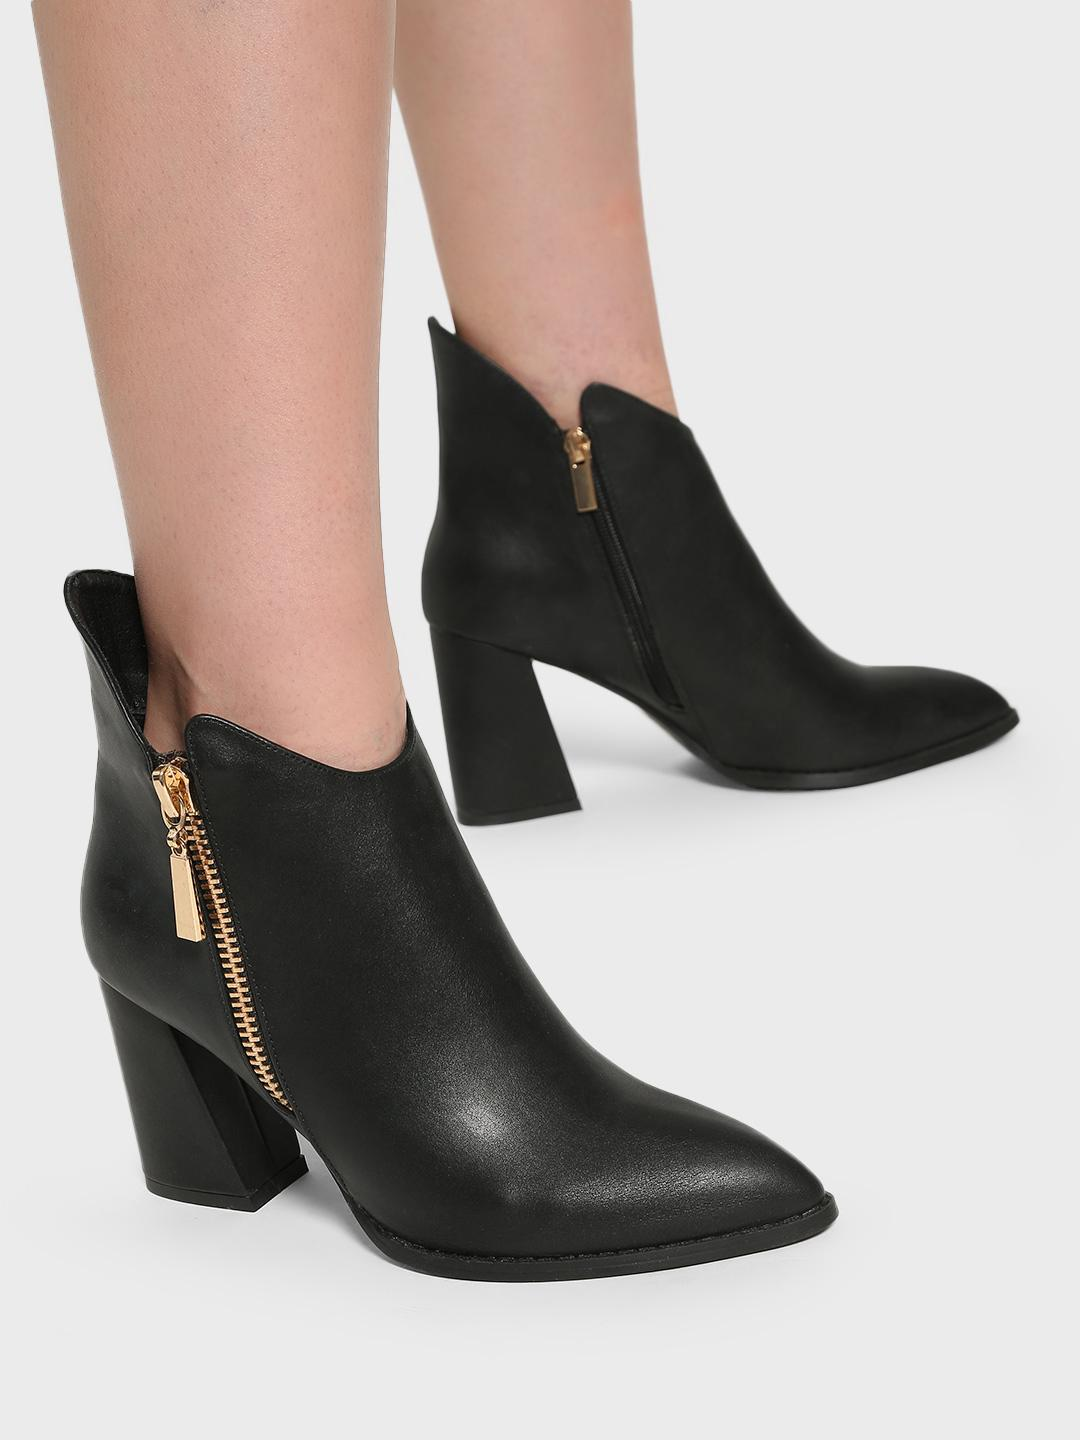 Intoto Black Pointed Toe Ankle Boots 1